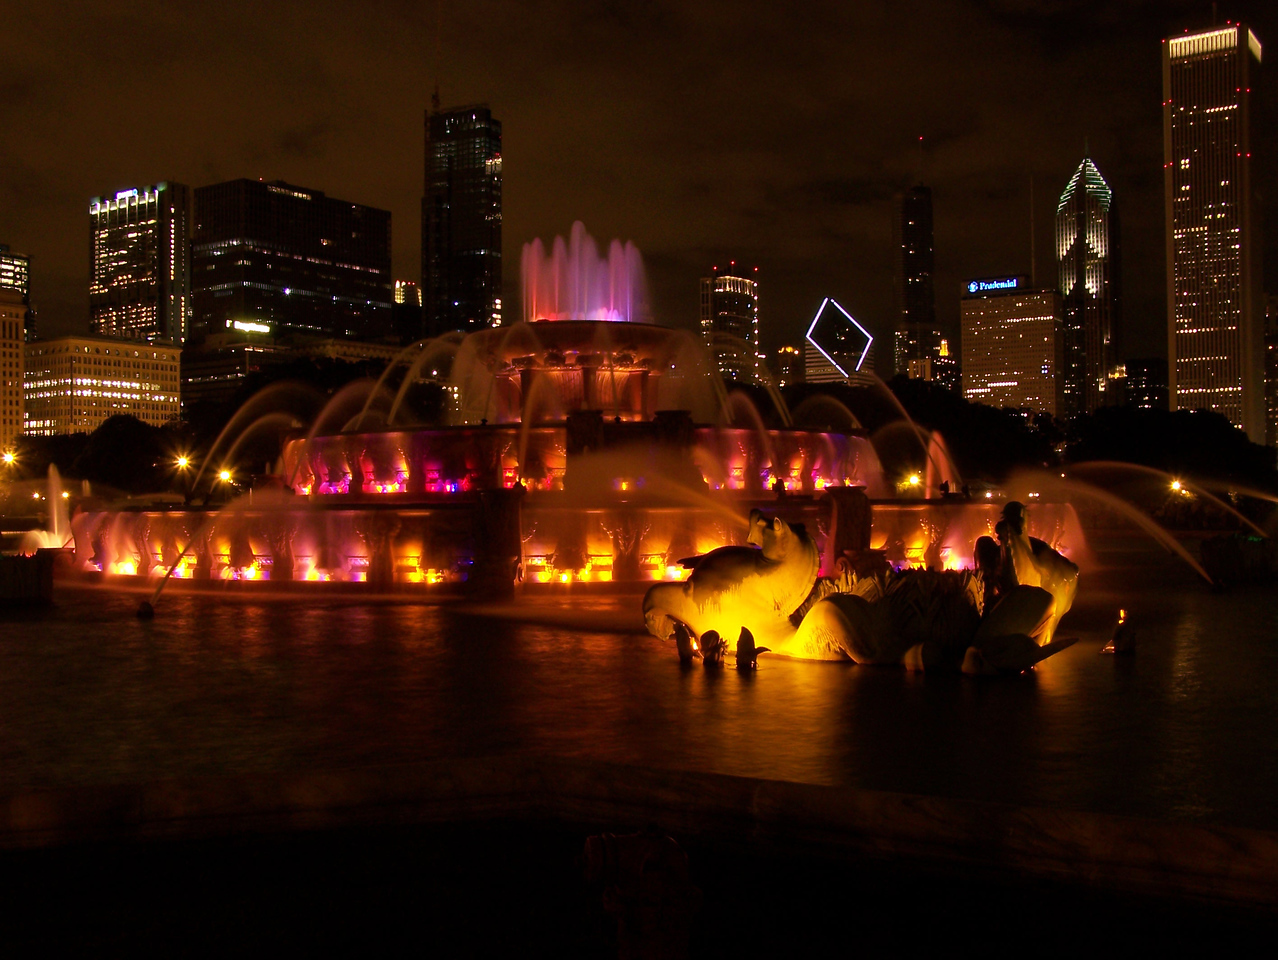 Buckingham Fountain 1 - Chicago, IL